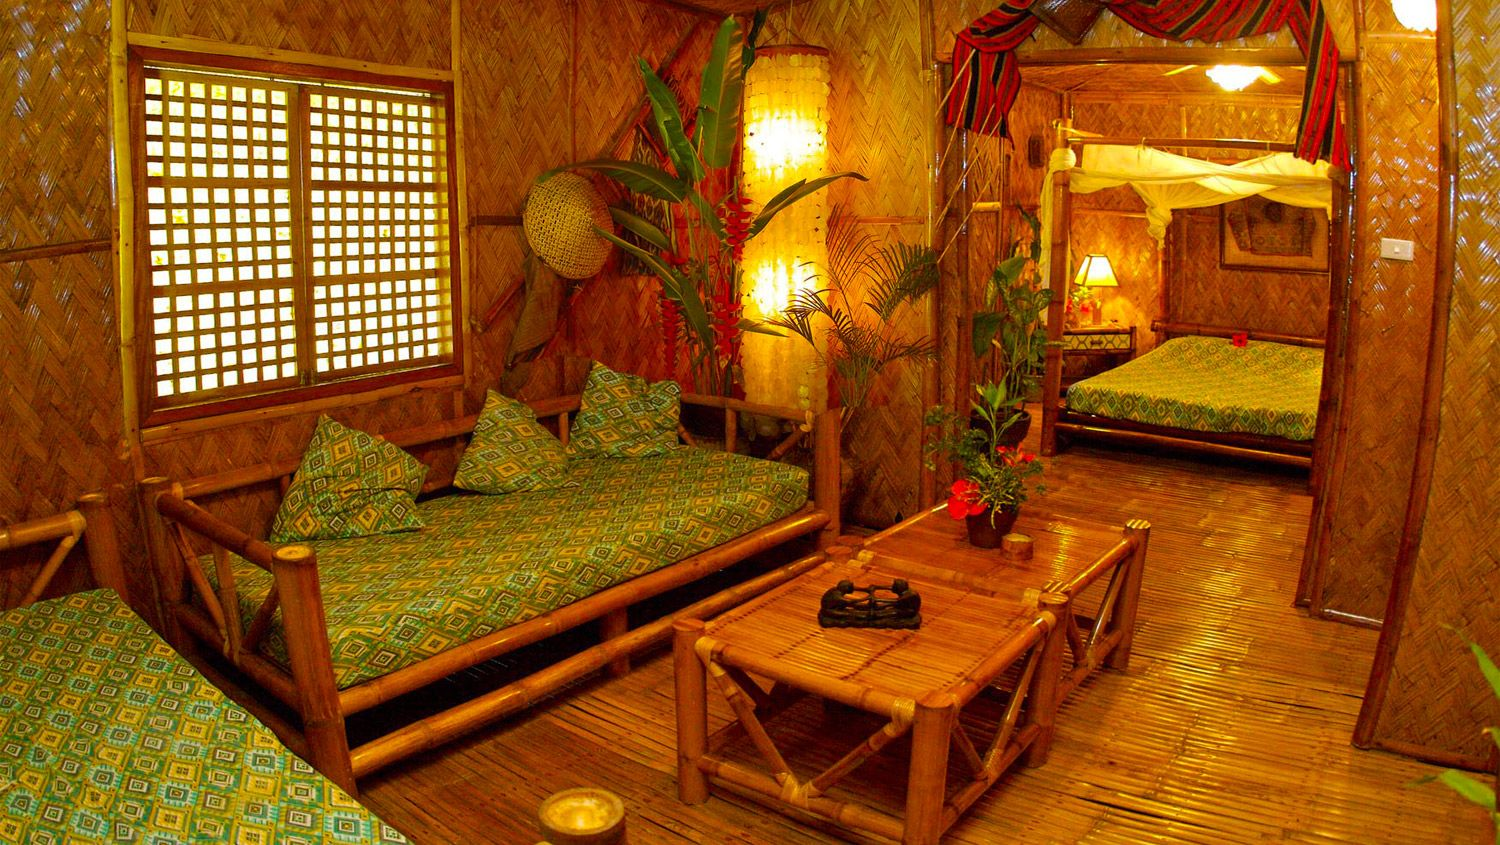 7dd4e96d317da2eddeef321a9c05cae6 - Download Bahay Kubo Small Bamboo House Design Philippines PNG